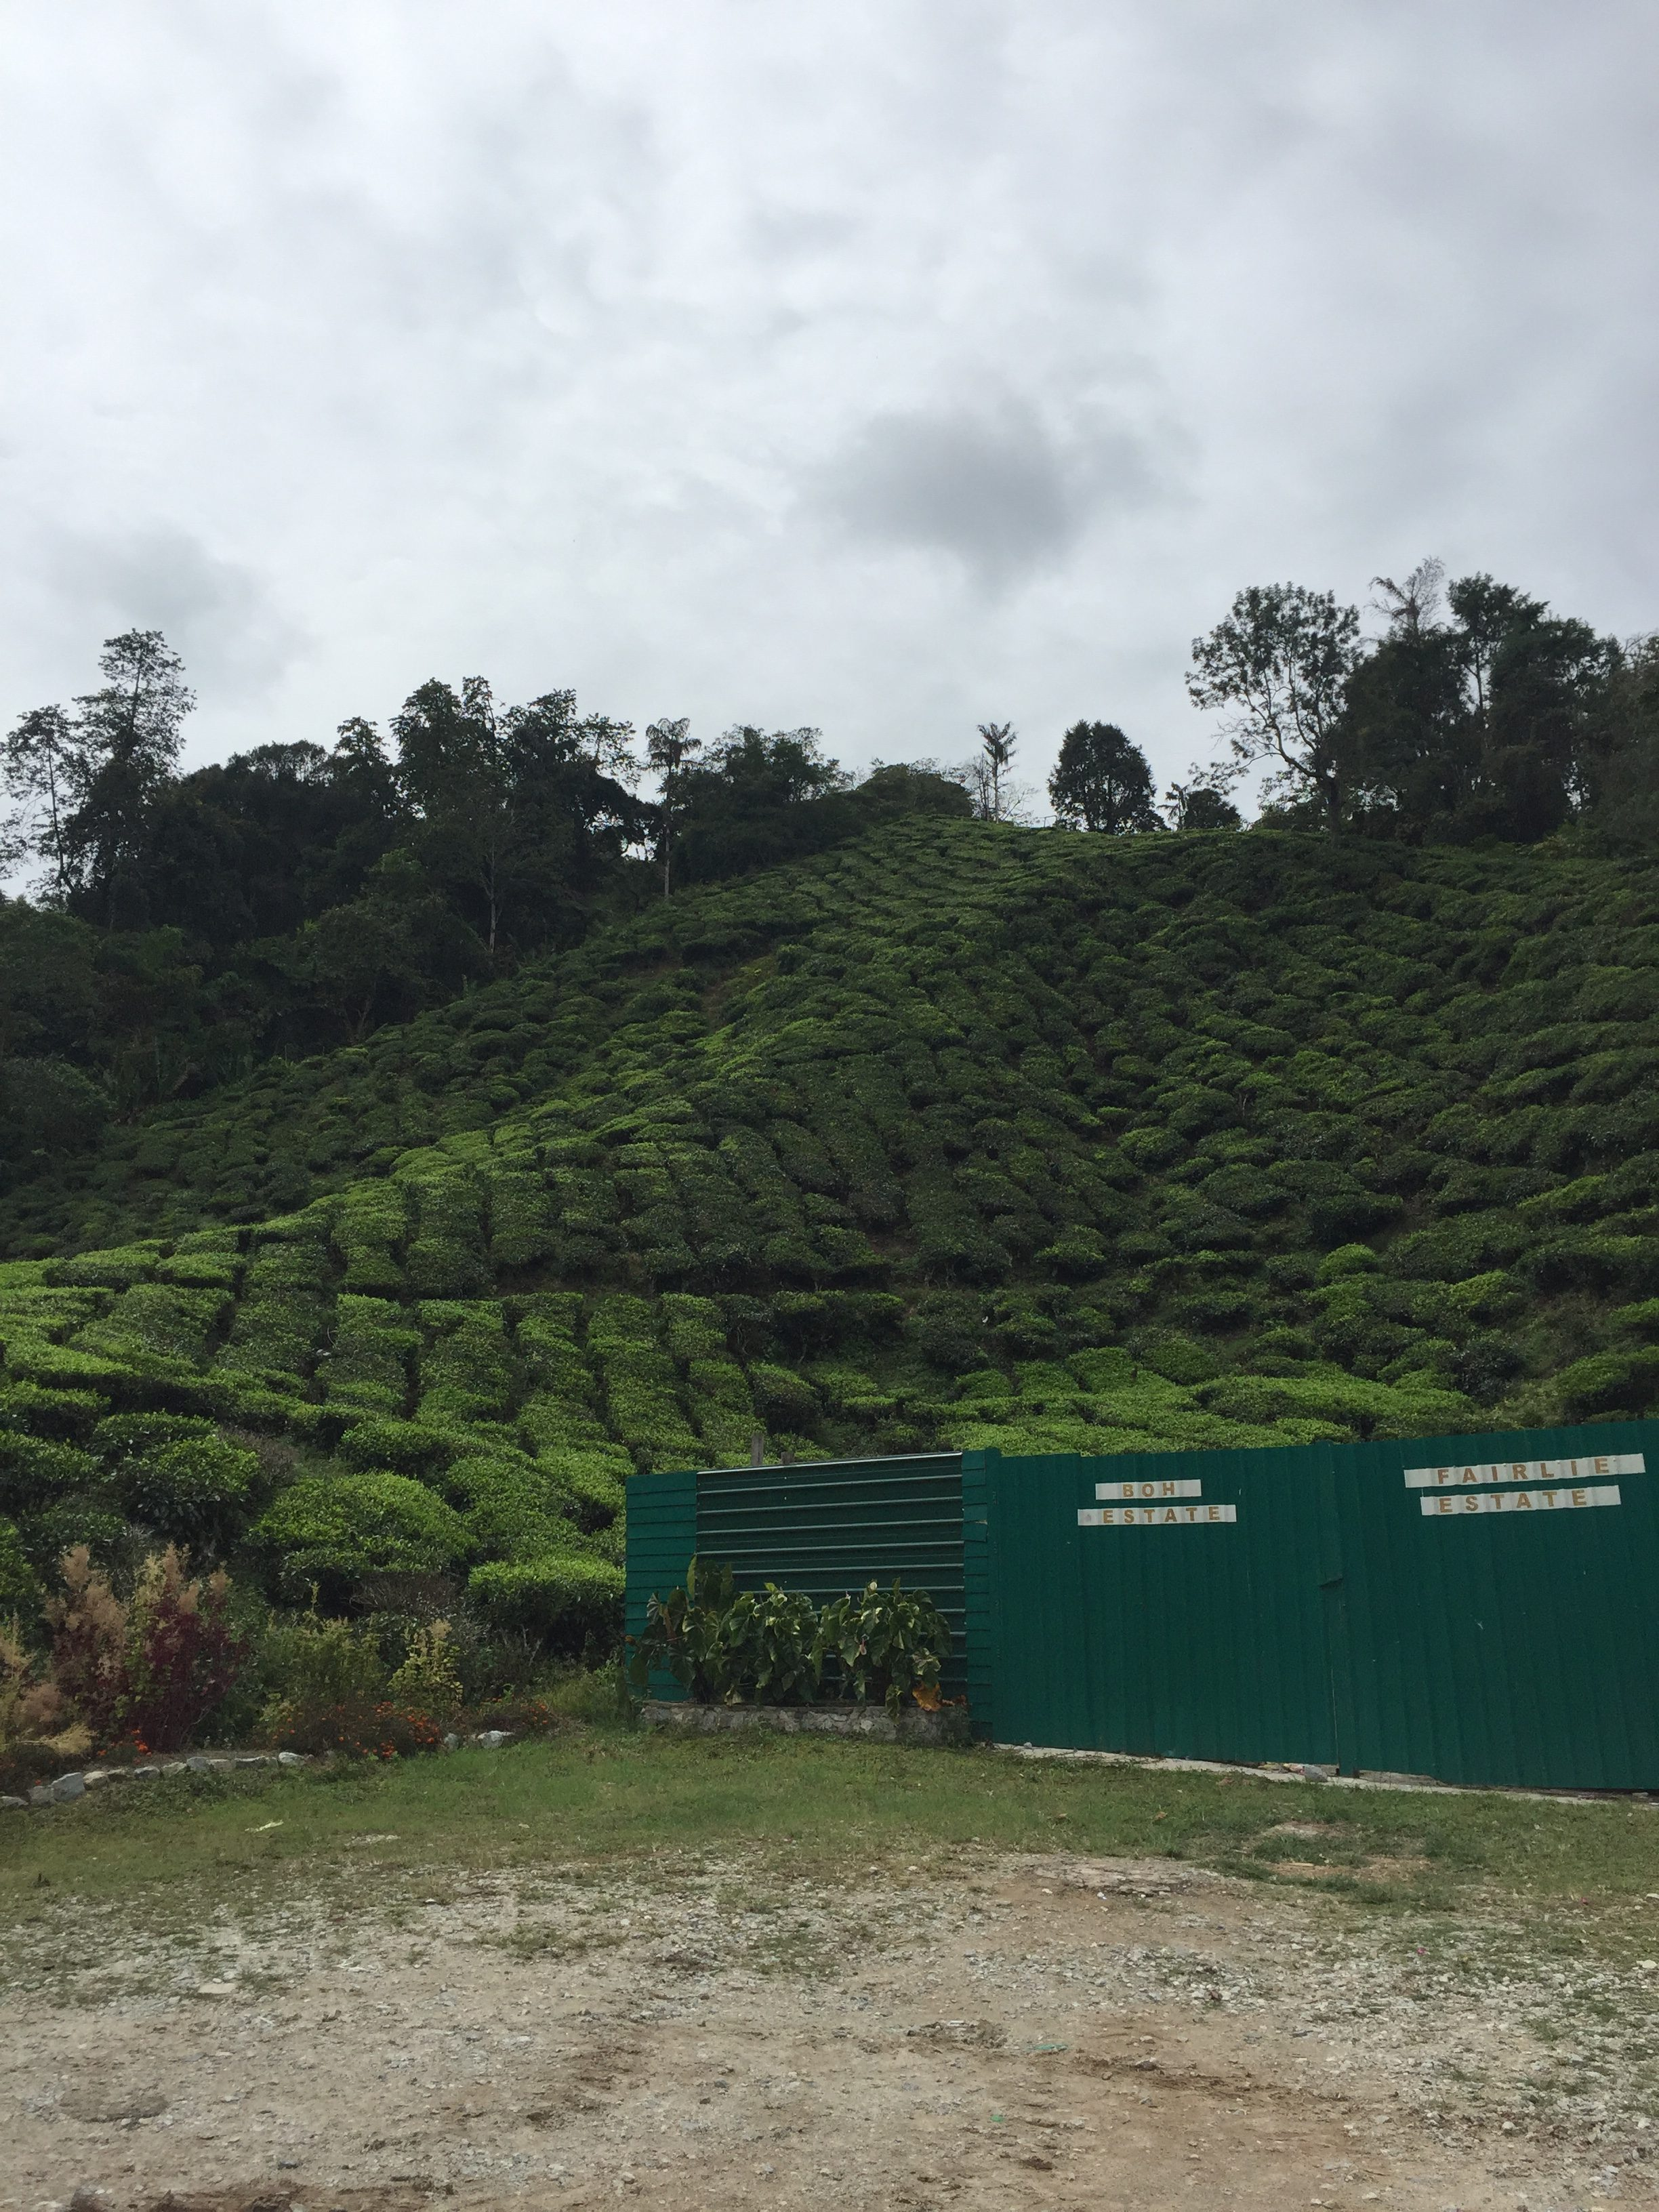 Boh Tea Plantation - we spent about 27km going up and down, and in loops